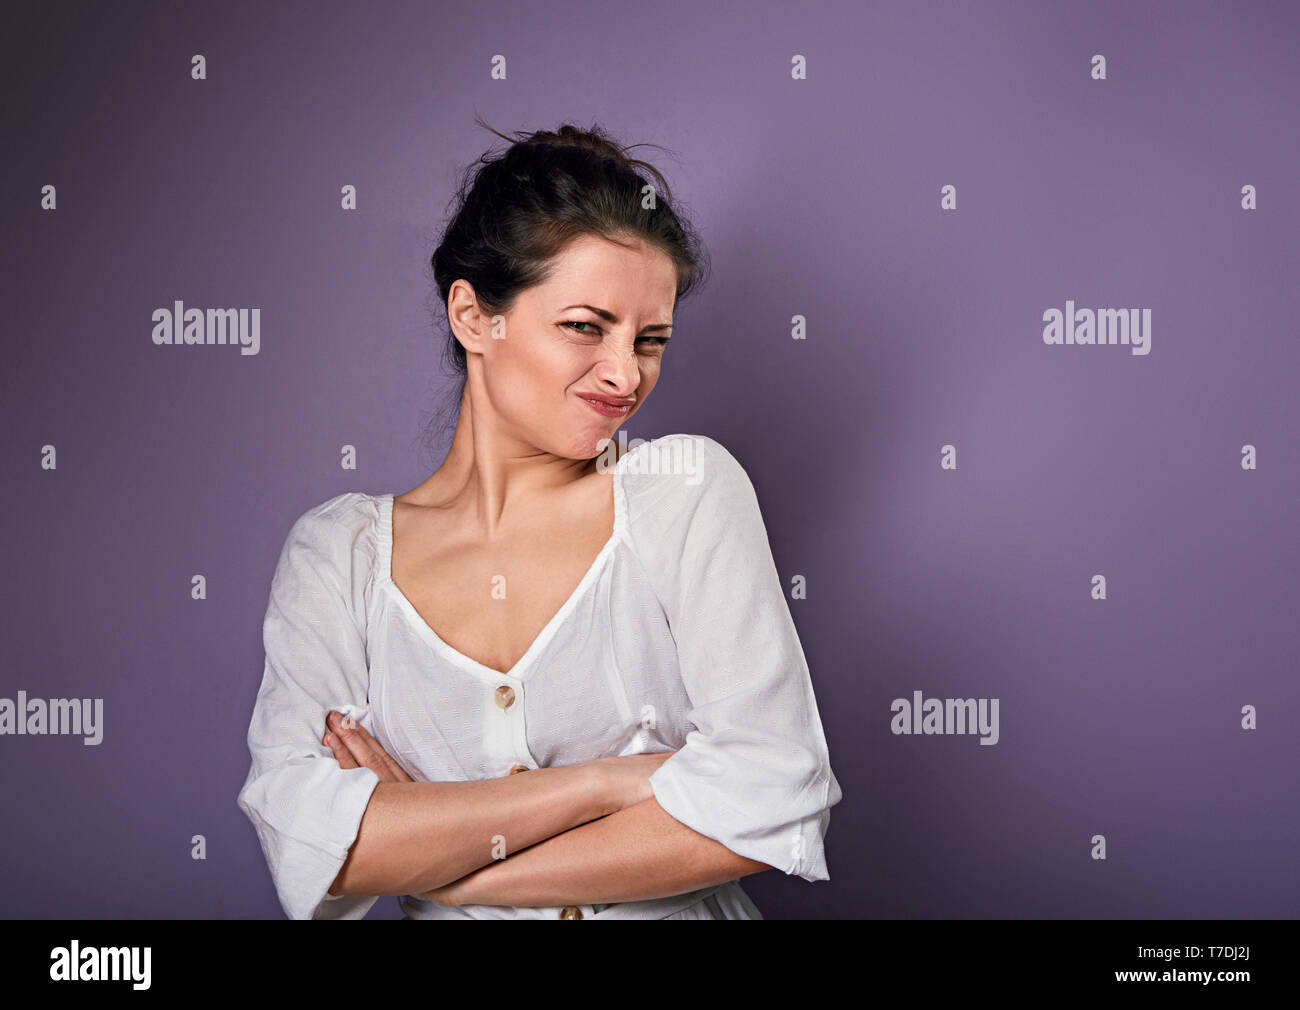 Beautiful unhappy woman in white shirt looking with disgust and grimacing the face on purple background with empty copy space - Stock Image